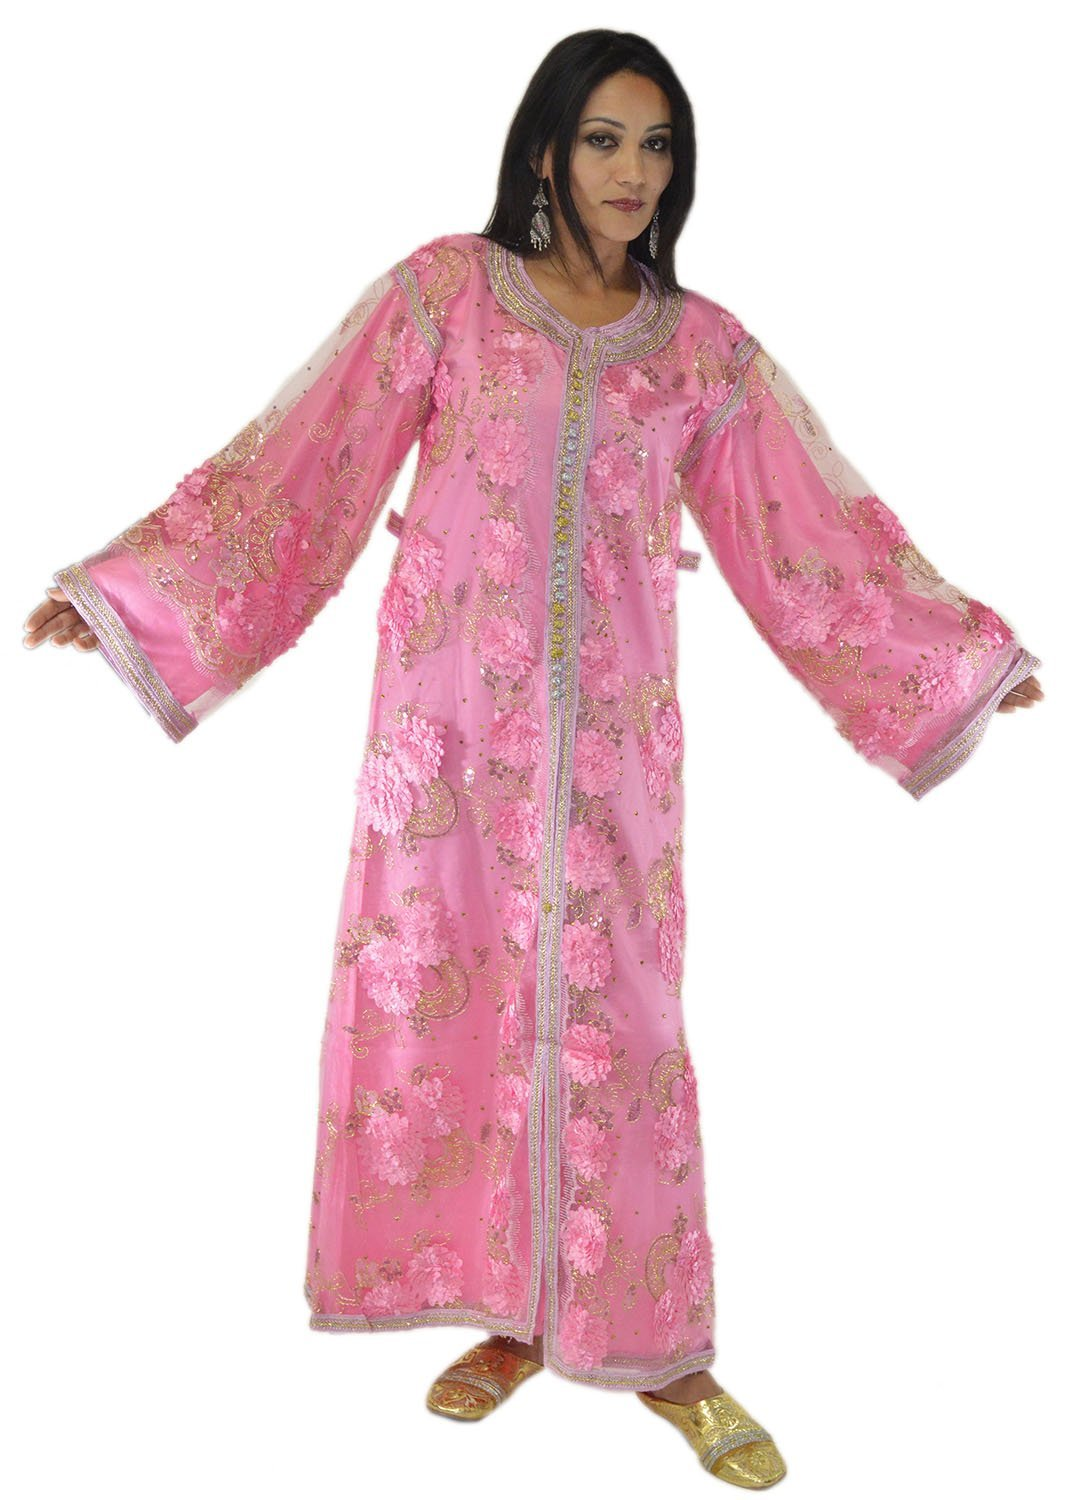 Moroccan Caftan handmade Kaftan Exquisite Wedding Gown 2 Pieces Embroidered Fits SMALL to LARGE